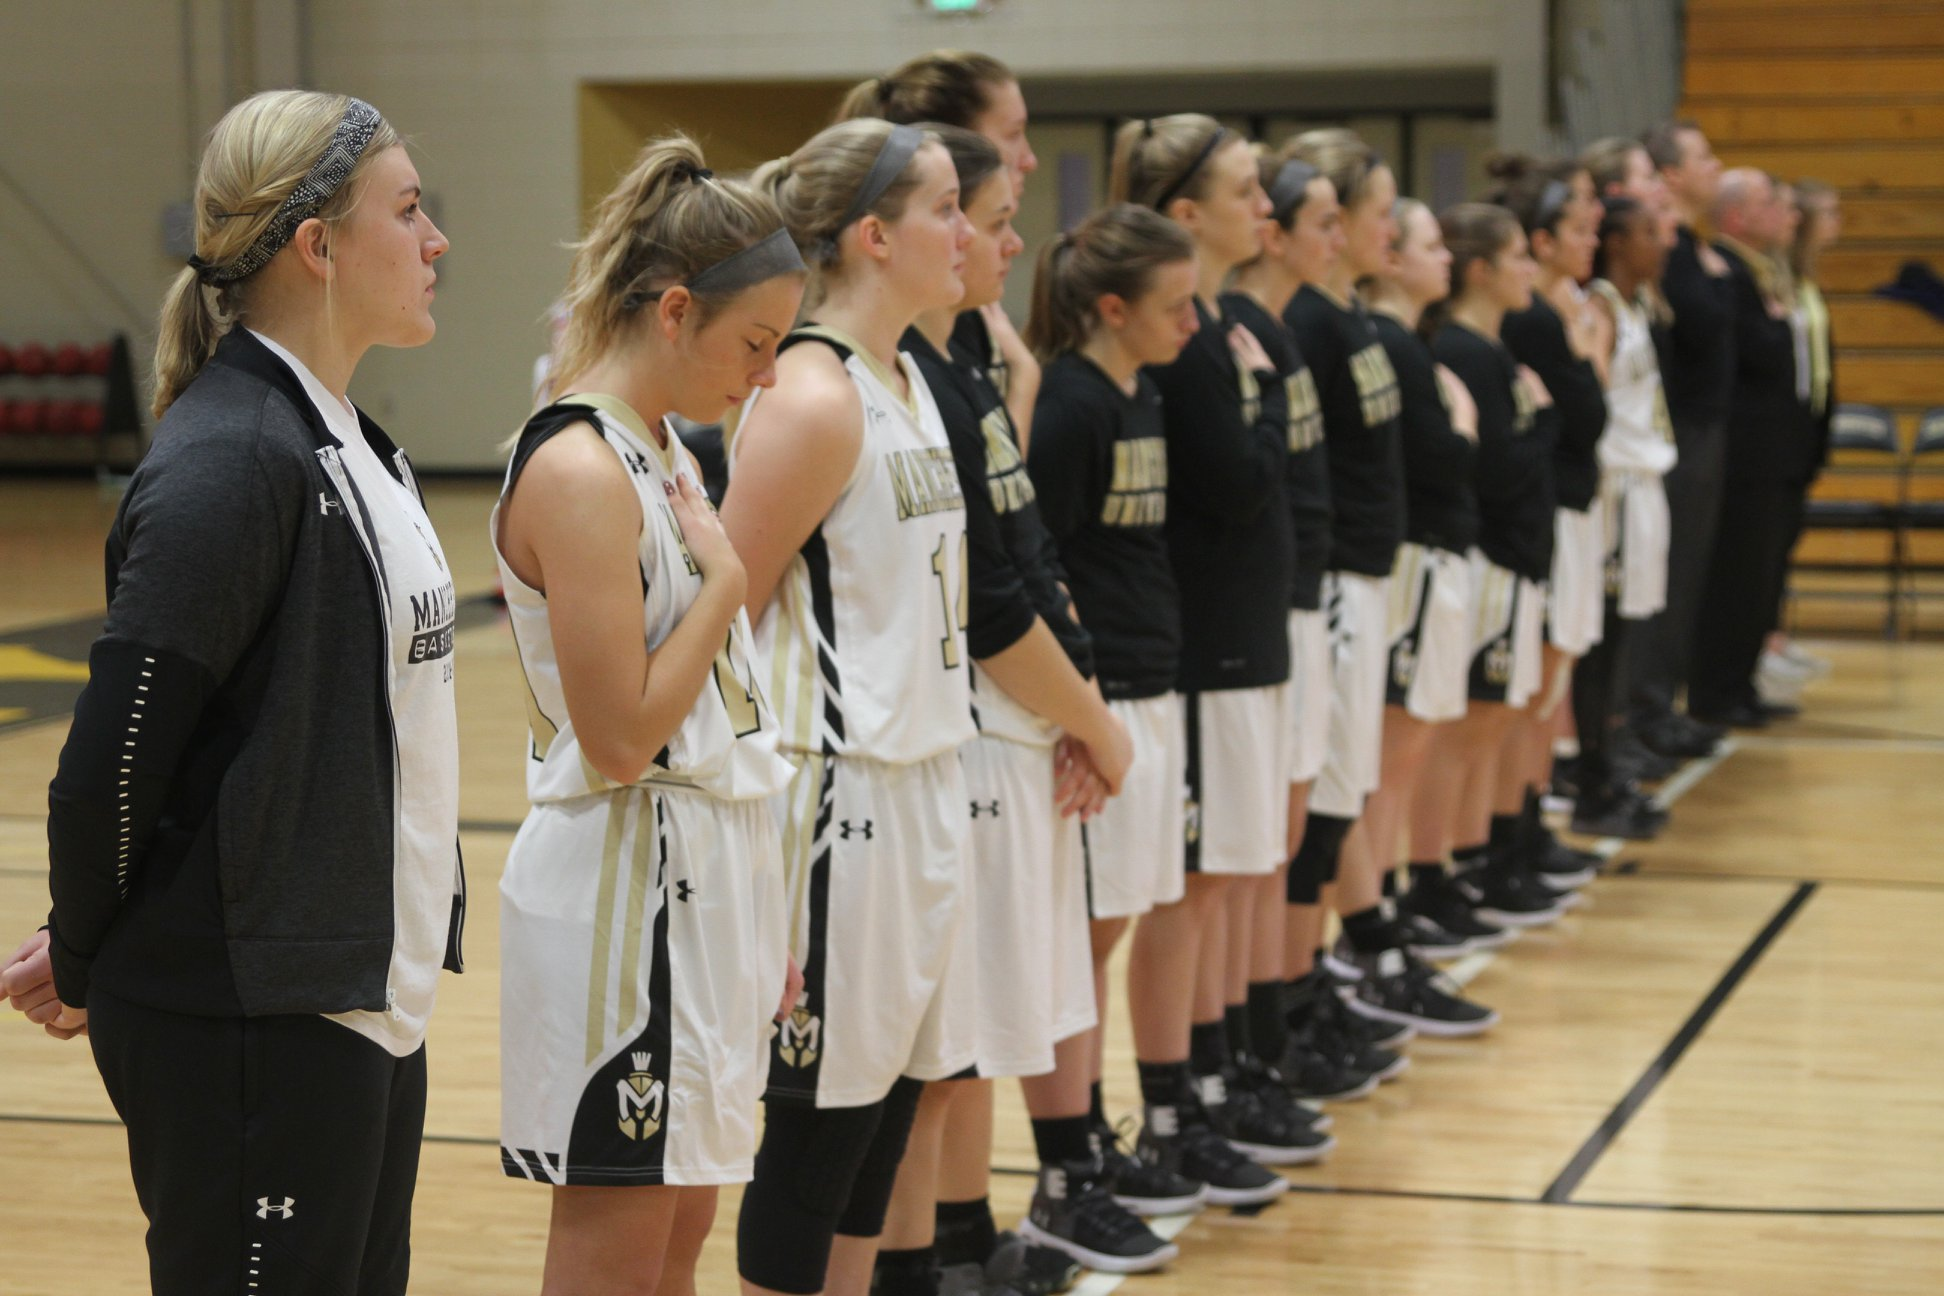 FB Men & Women's Bball (7)